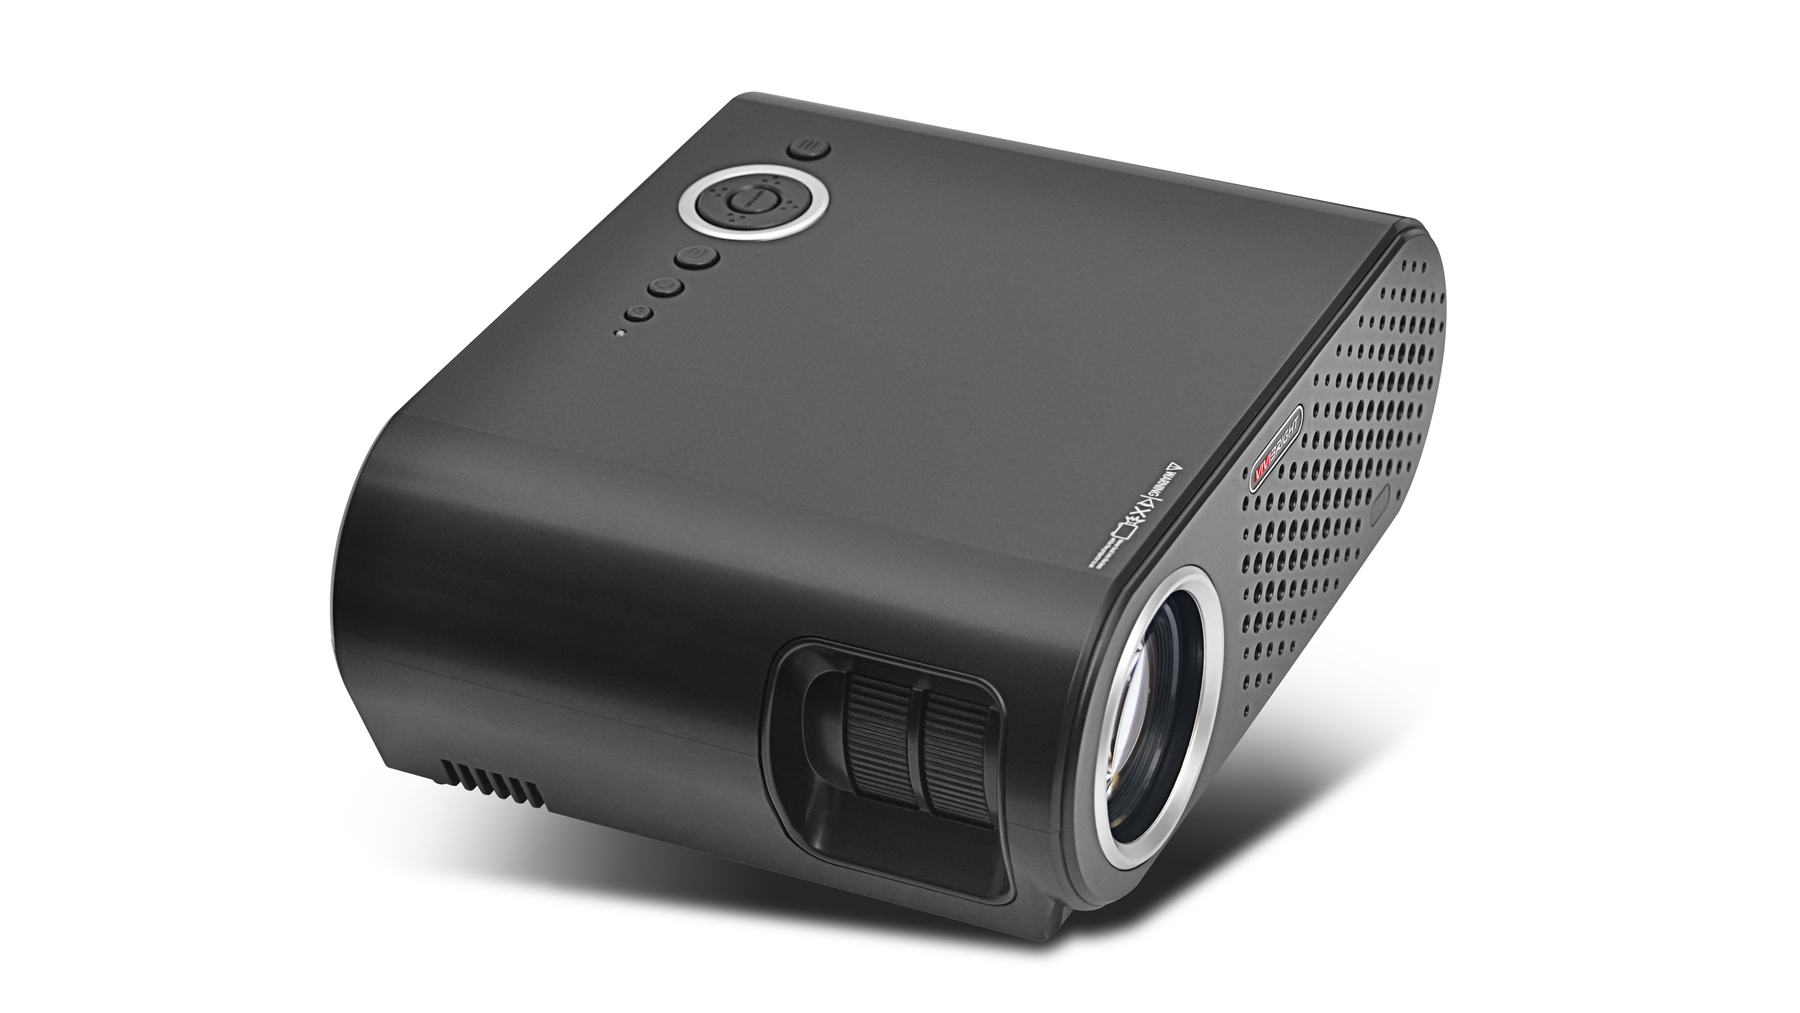 Support 1920 x 1080 video 3200 lumens LED high quality projector GP90